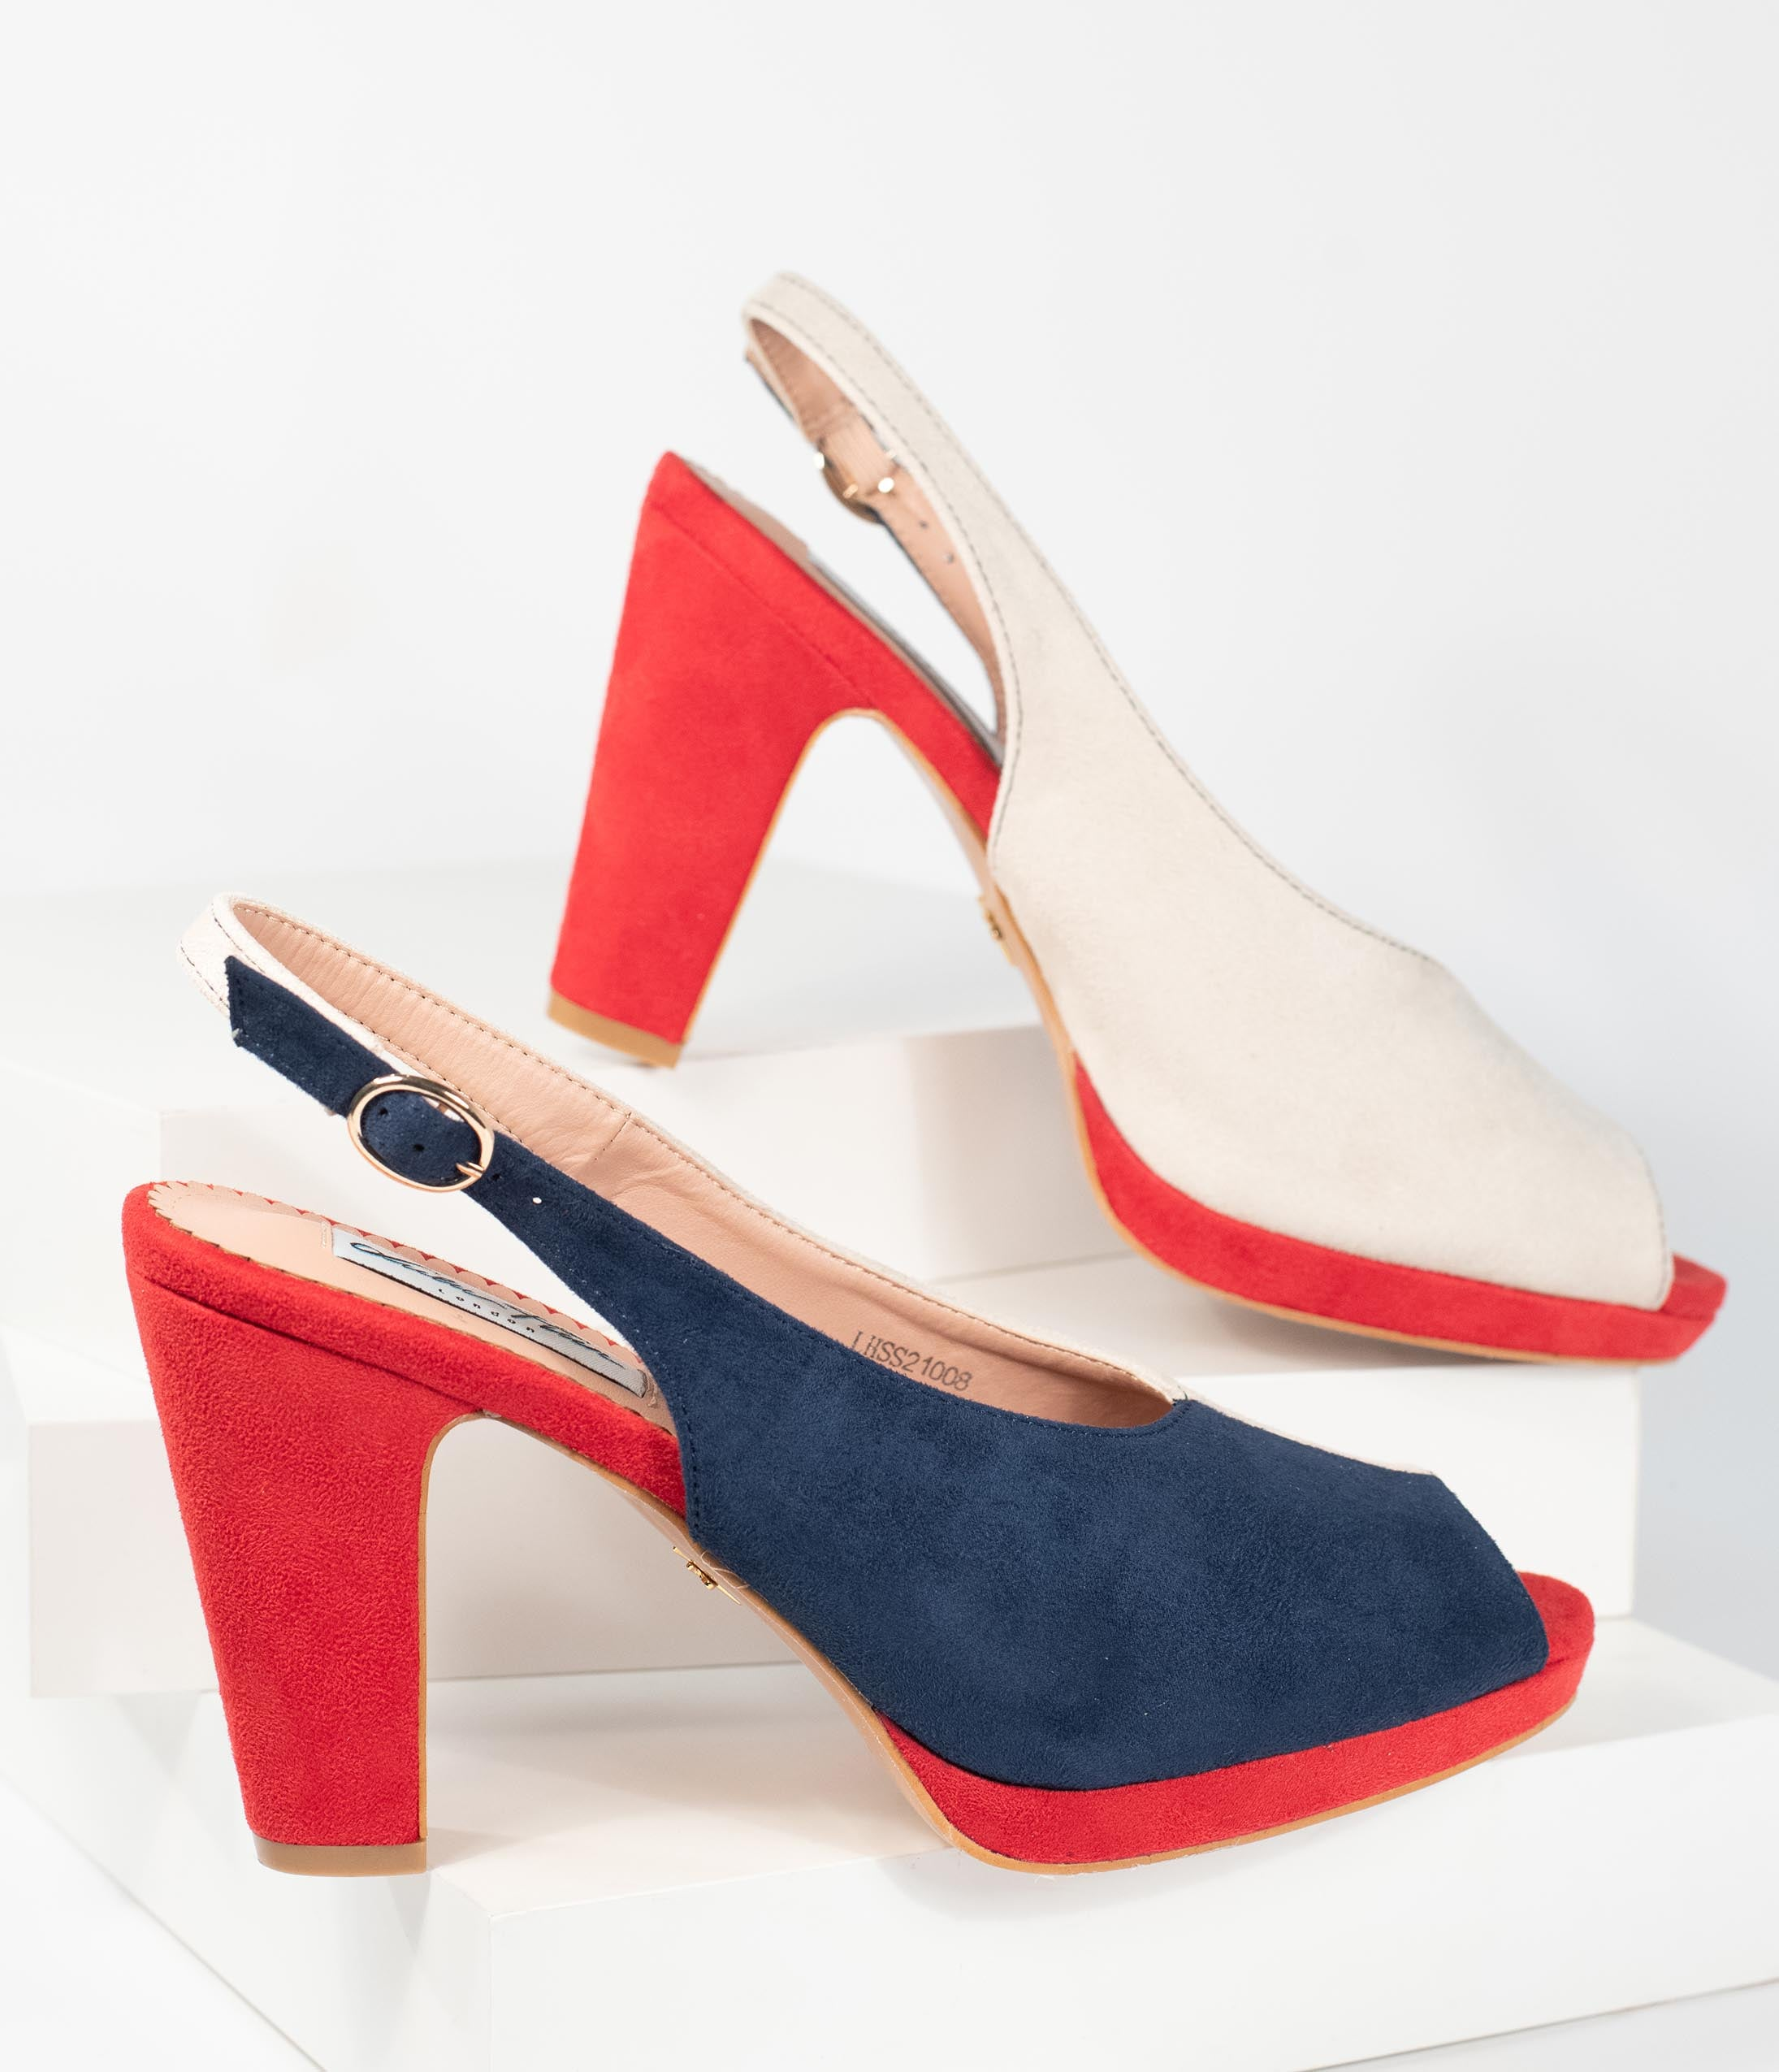 1940s Style Shoes, 40s Shoes, Heels, Boots Collectif Navy  Ivory Colorblock Suede Peep Toe Ada Heels $62.00 AT vintagedancer.com